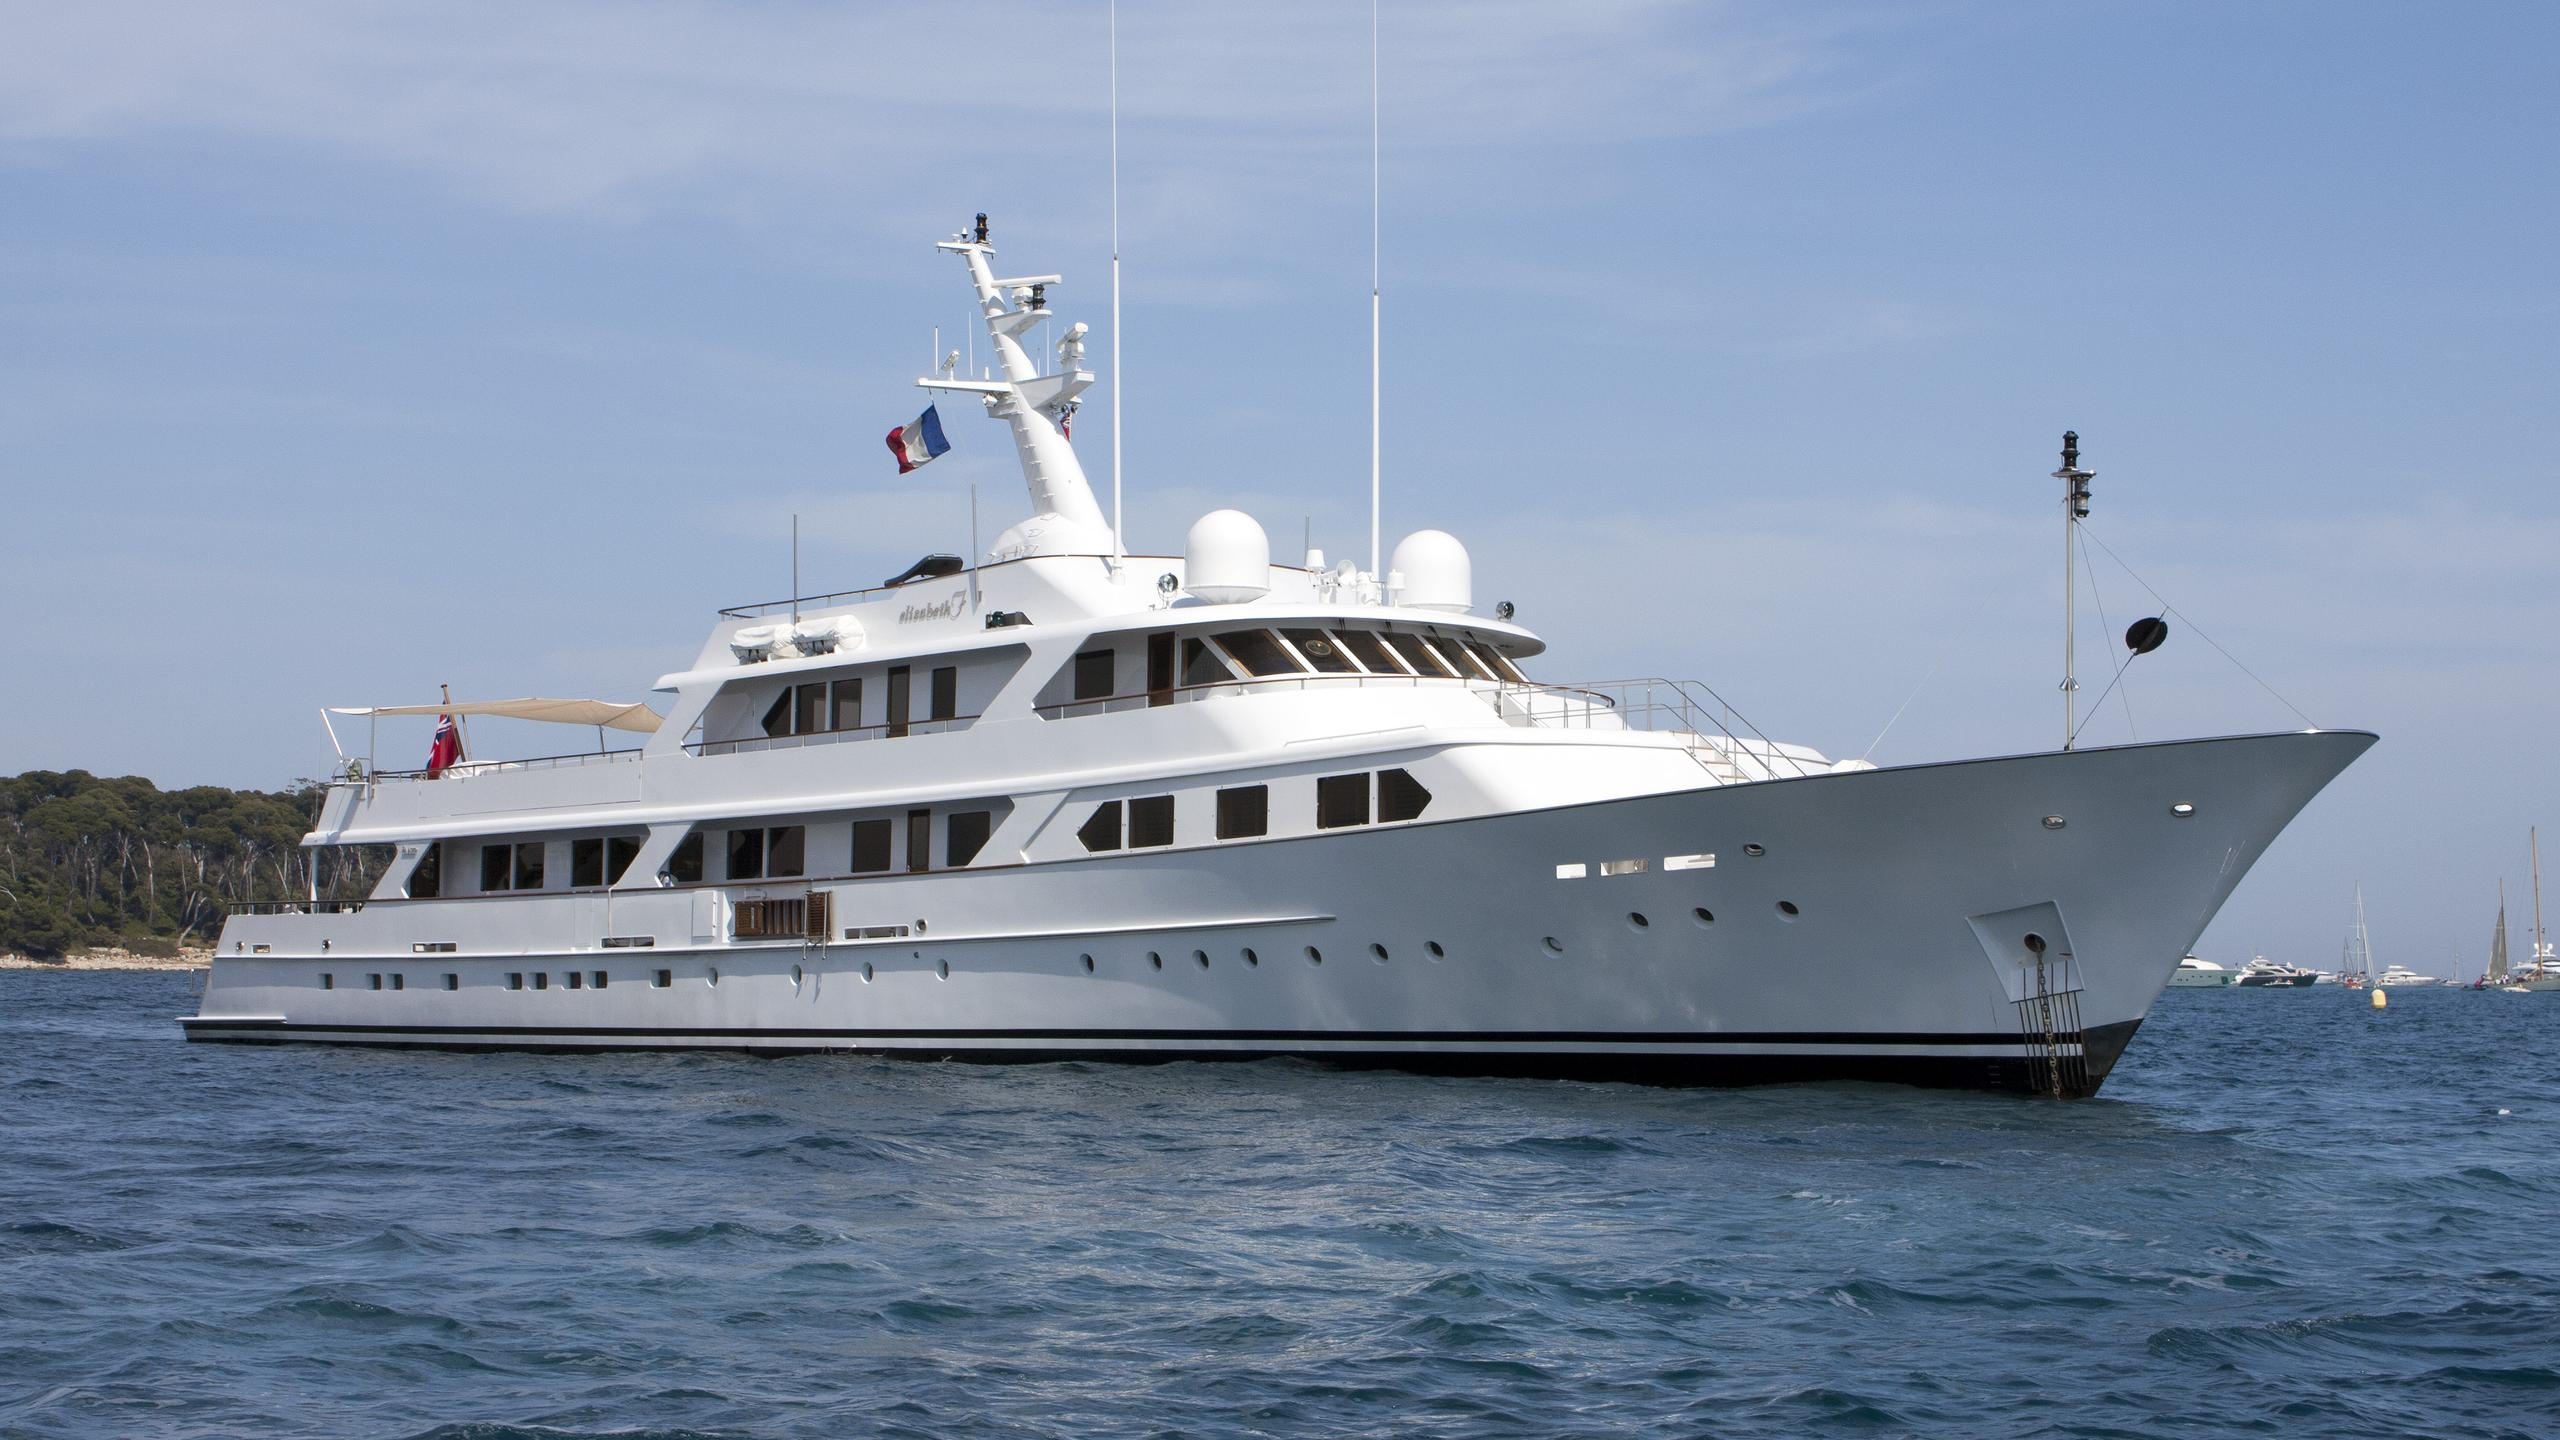 mirage-motor-yacht-feadship-1979-53m-profile